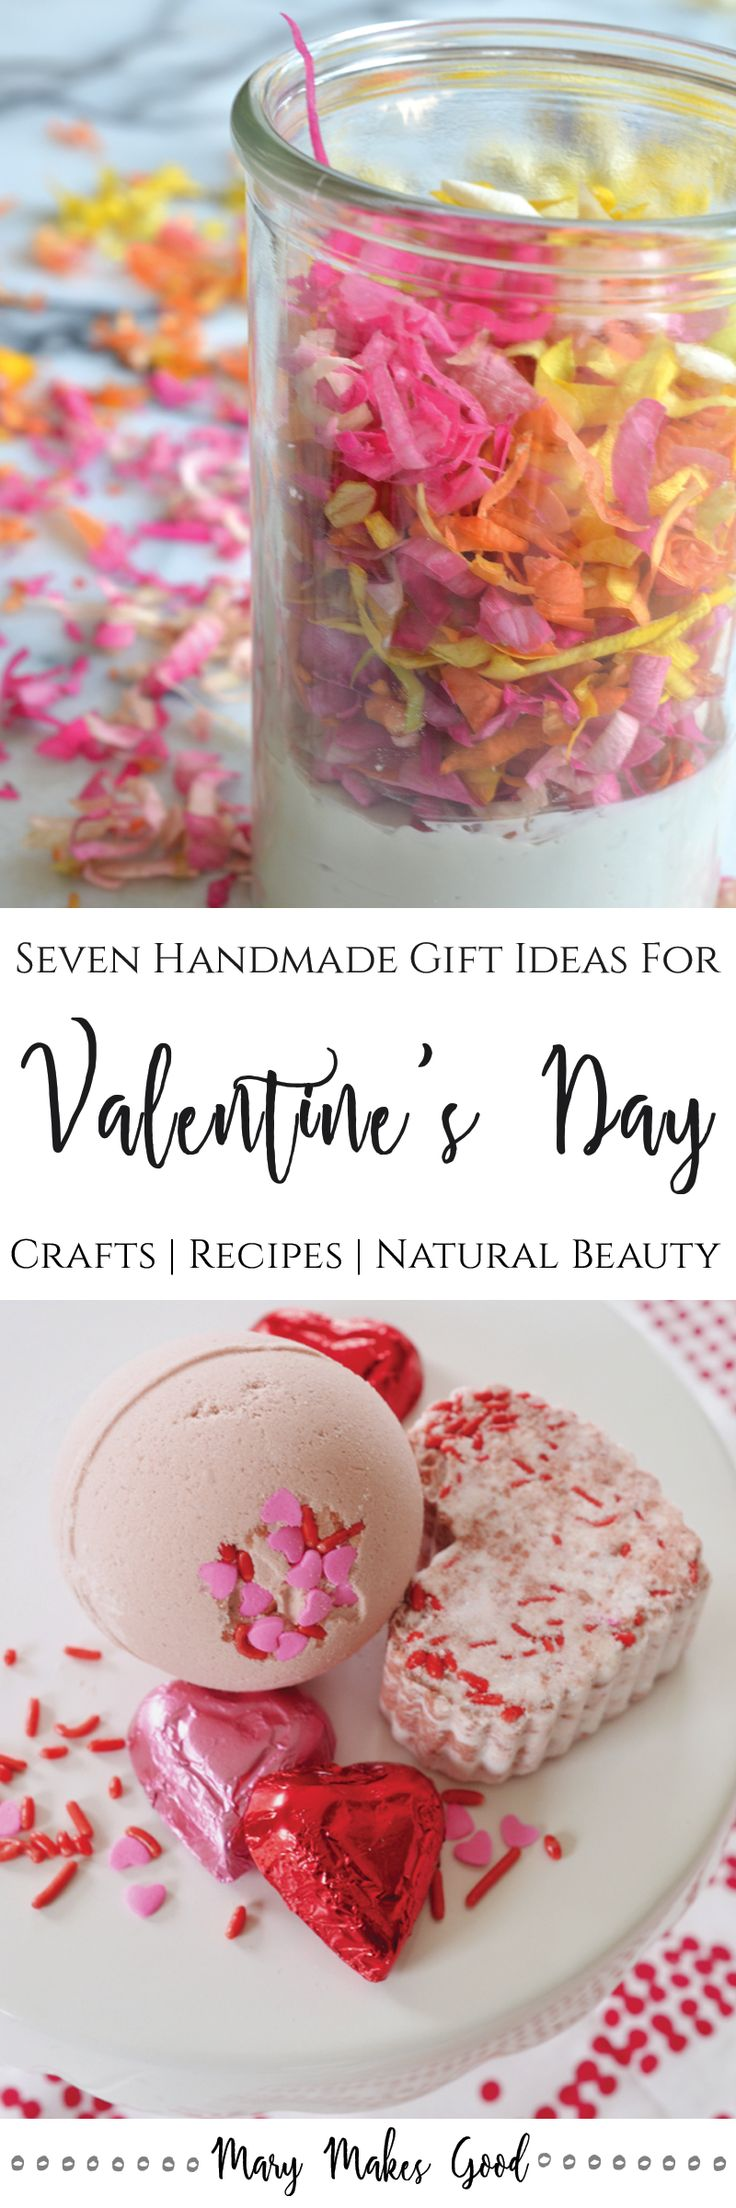 Seven Handmade Gift Ideas for Valentines Day